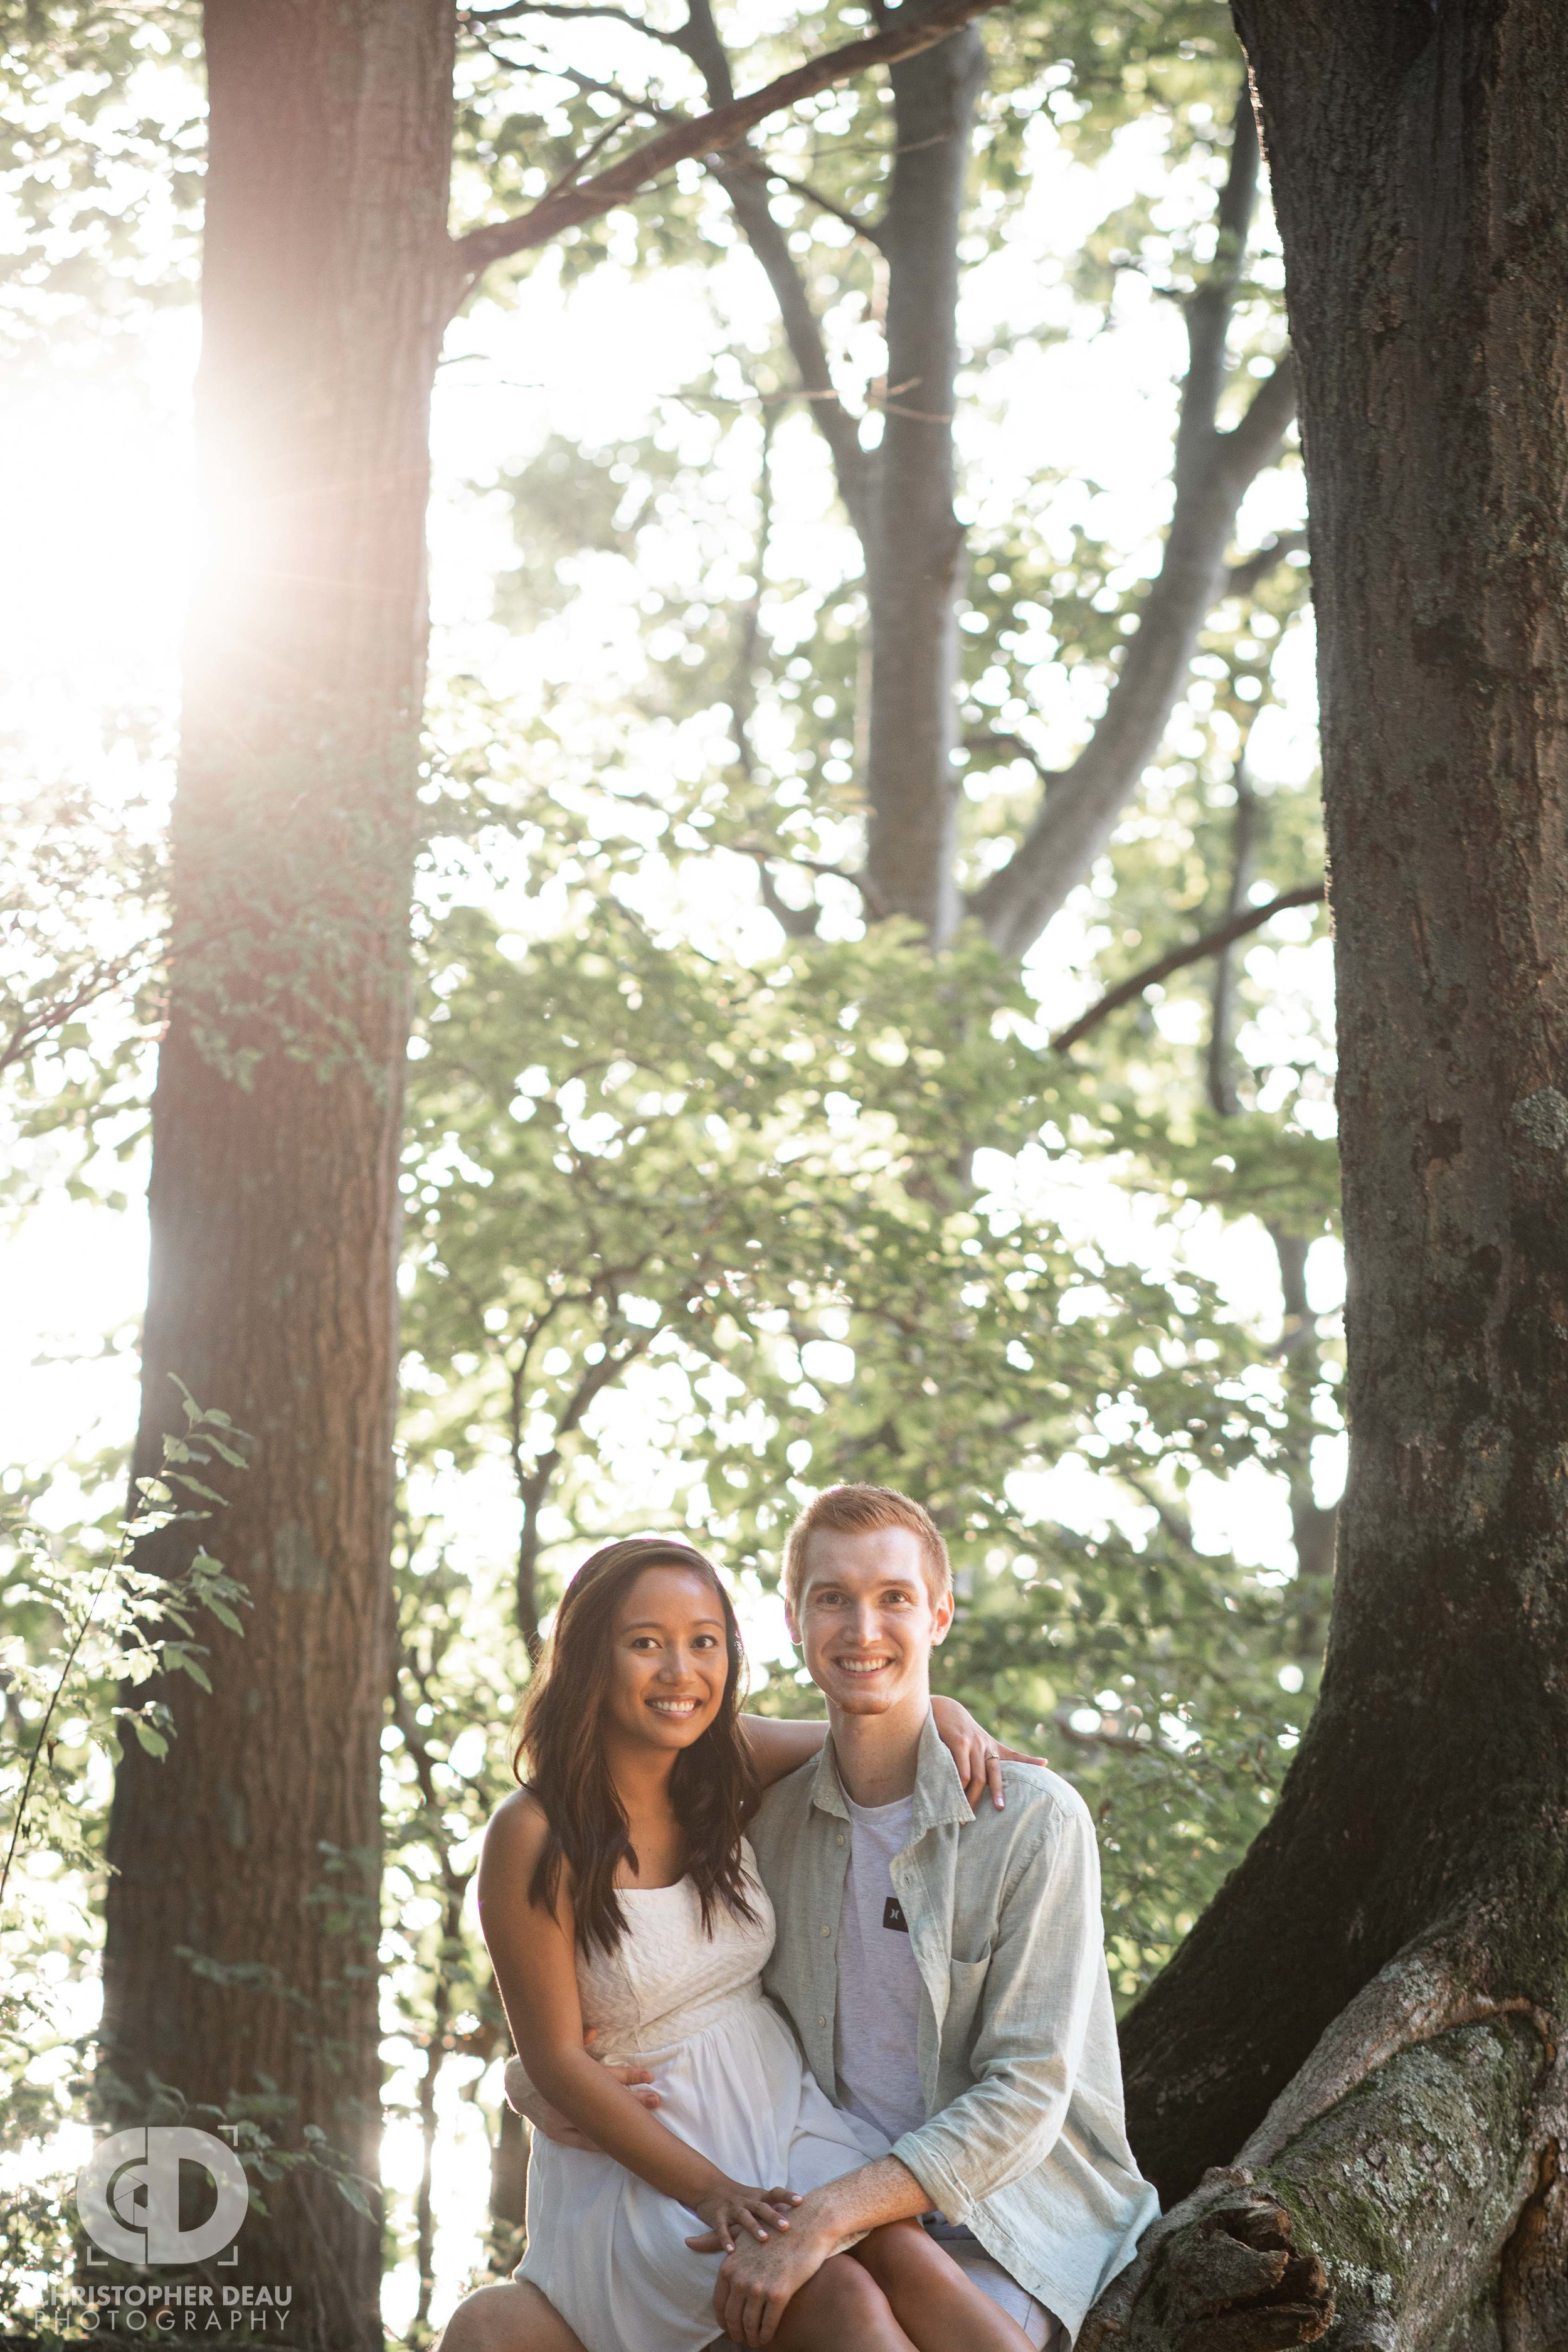 Sunset at Van Buren State Park during engagement photos